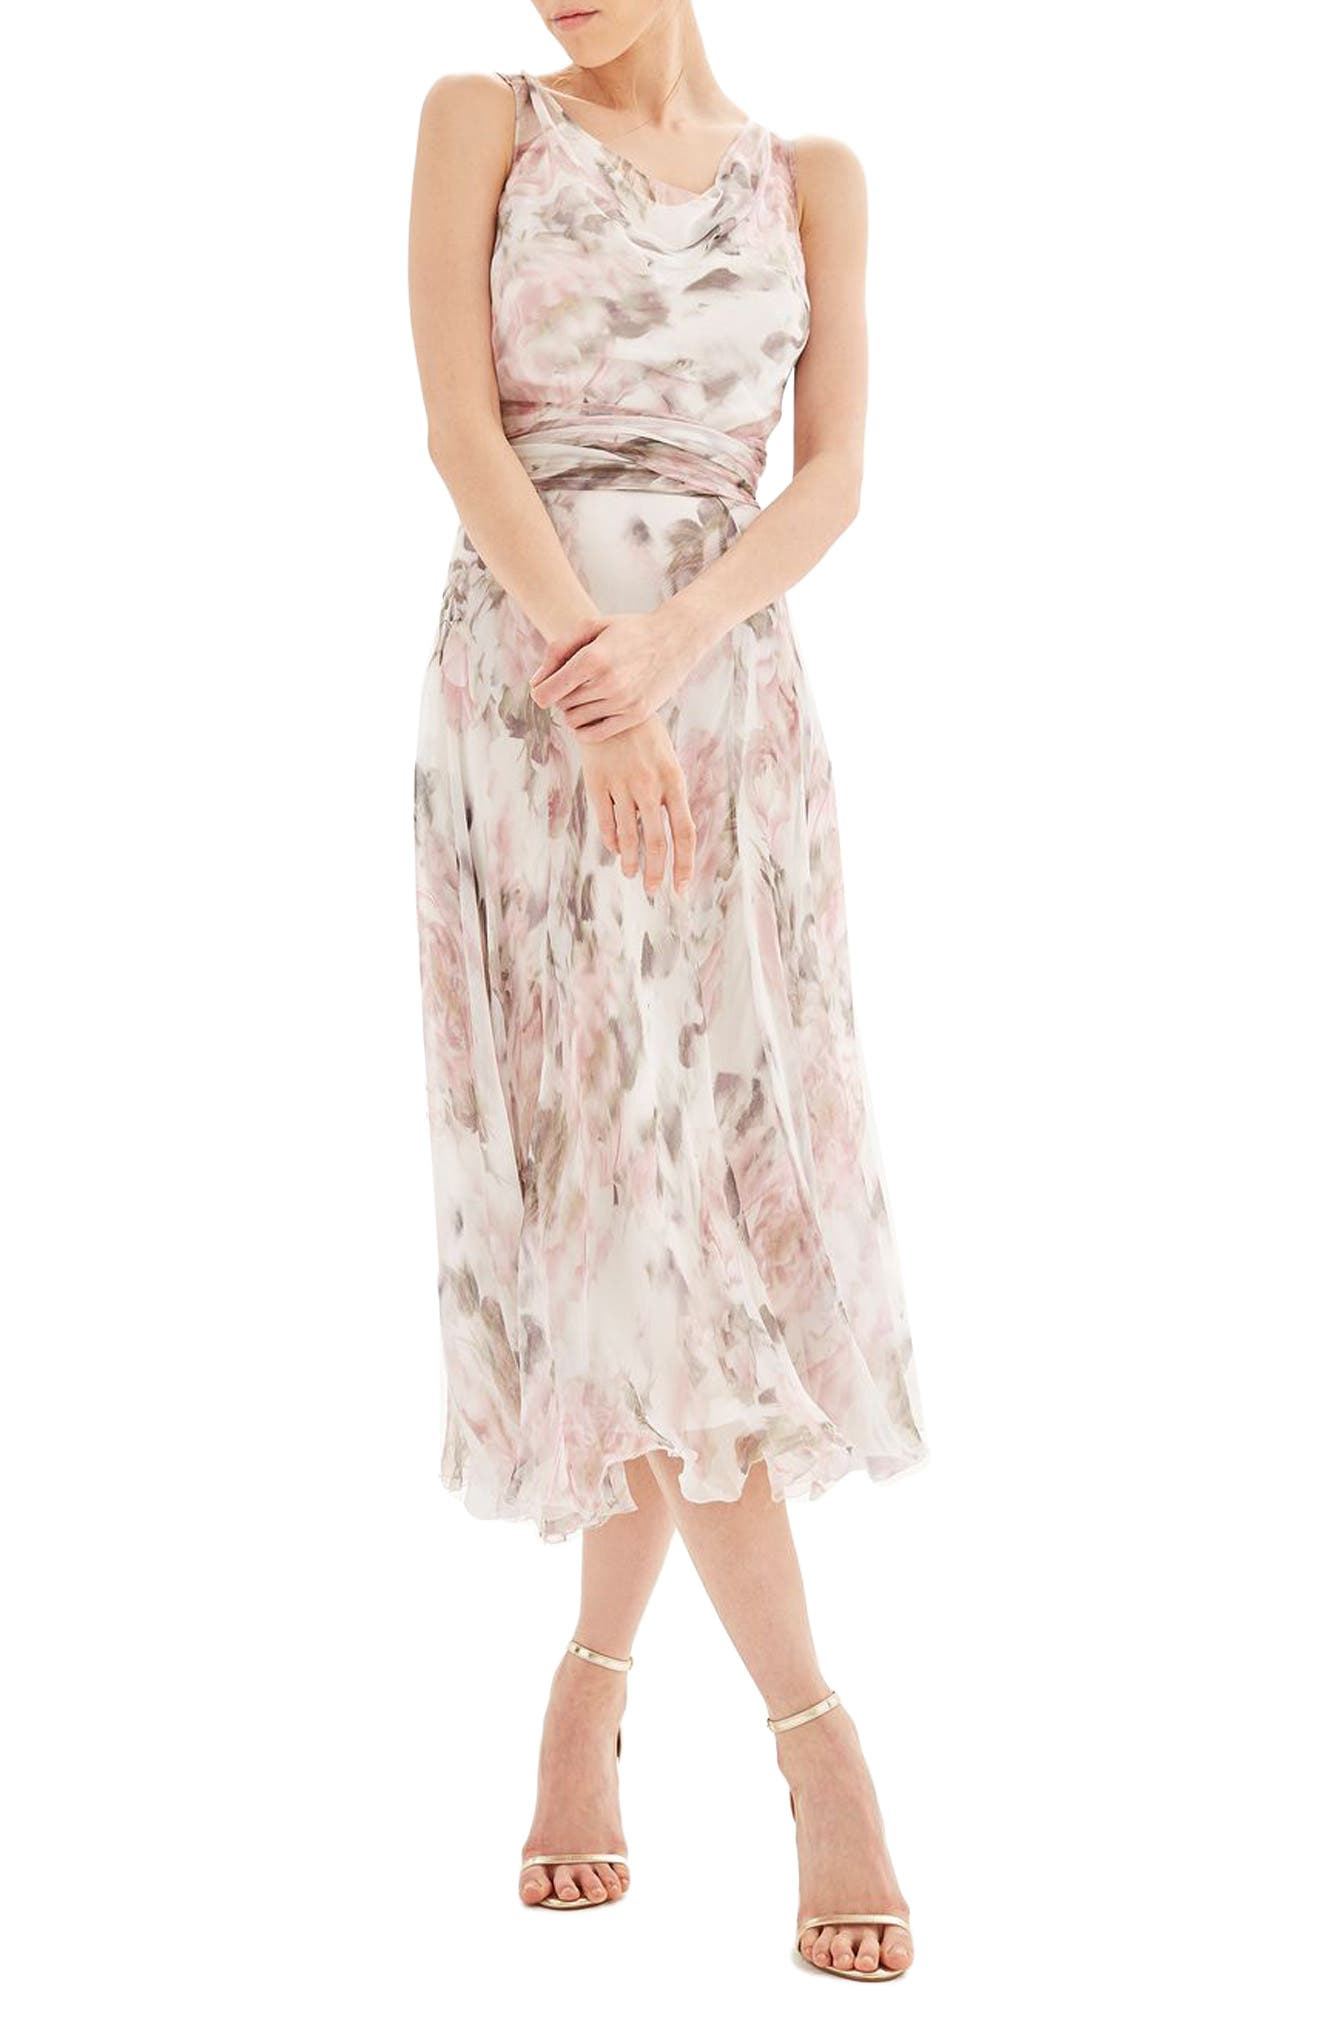 Topshop Bride Silk Midi Dress